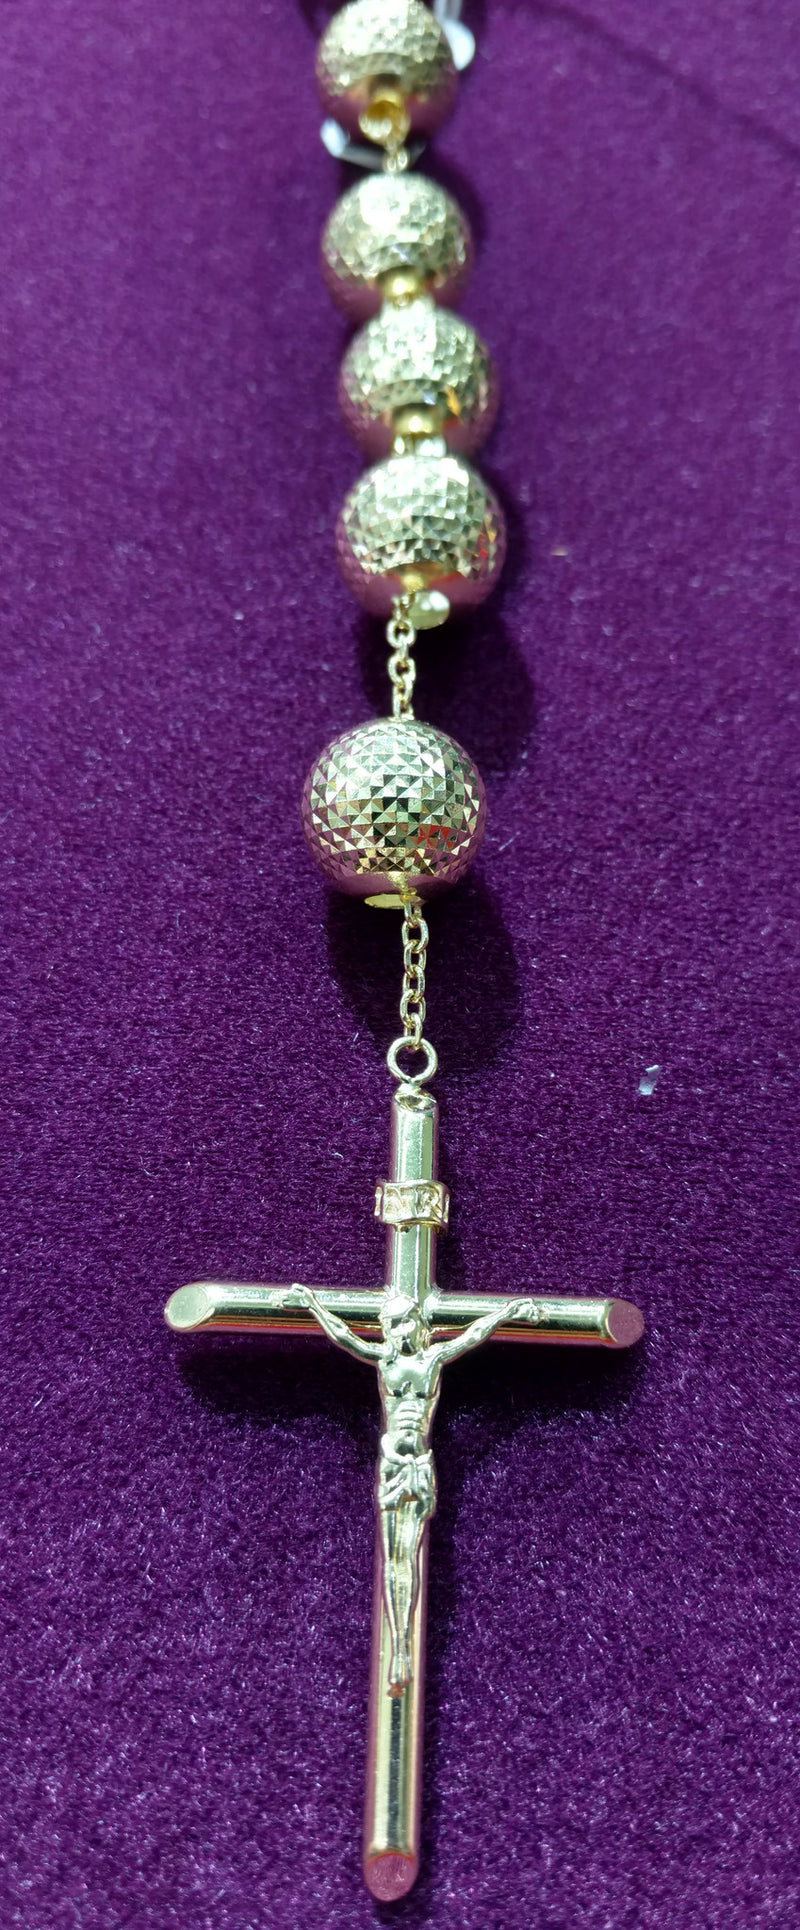 Rosary 14K Yellow Gold - Lucky Diamond 恆福珠寶金行 New York City 169 Canal Street 10013 Jewelry store Playboi Charlie Chinatown @luckydiamondny 2124311180